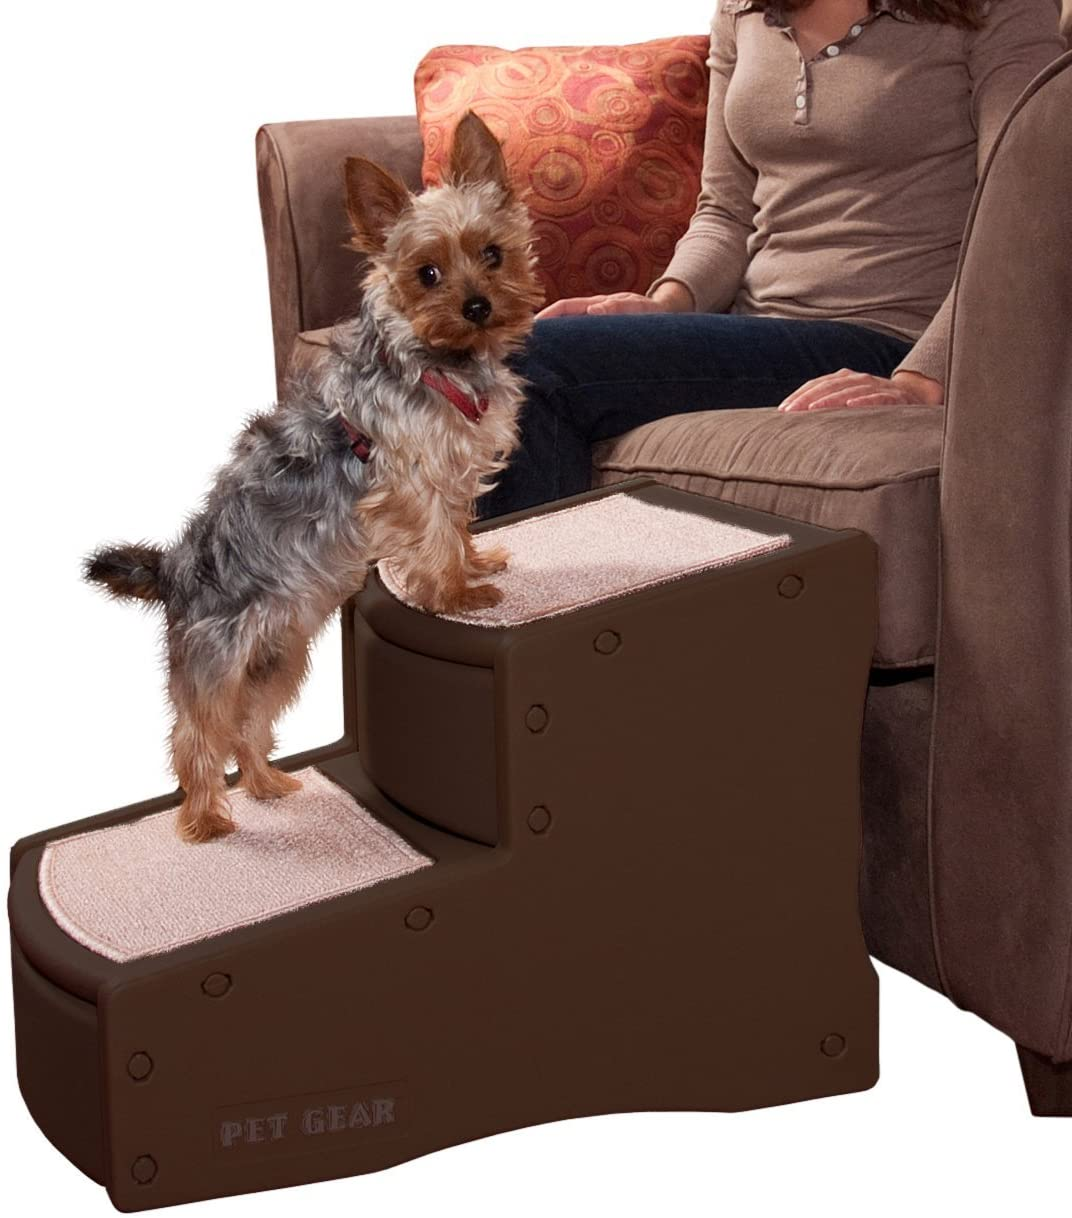 Pet Gear Step Pet Stairs